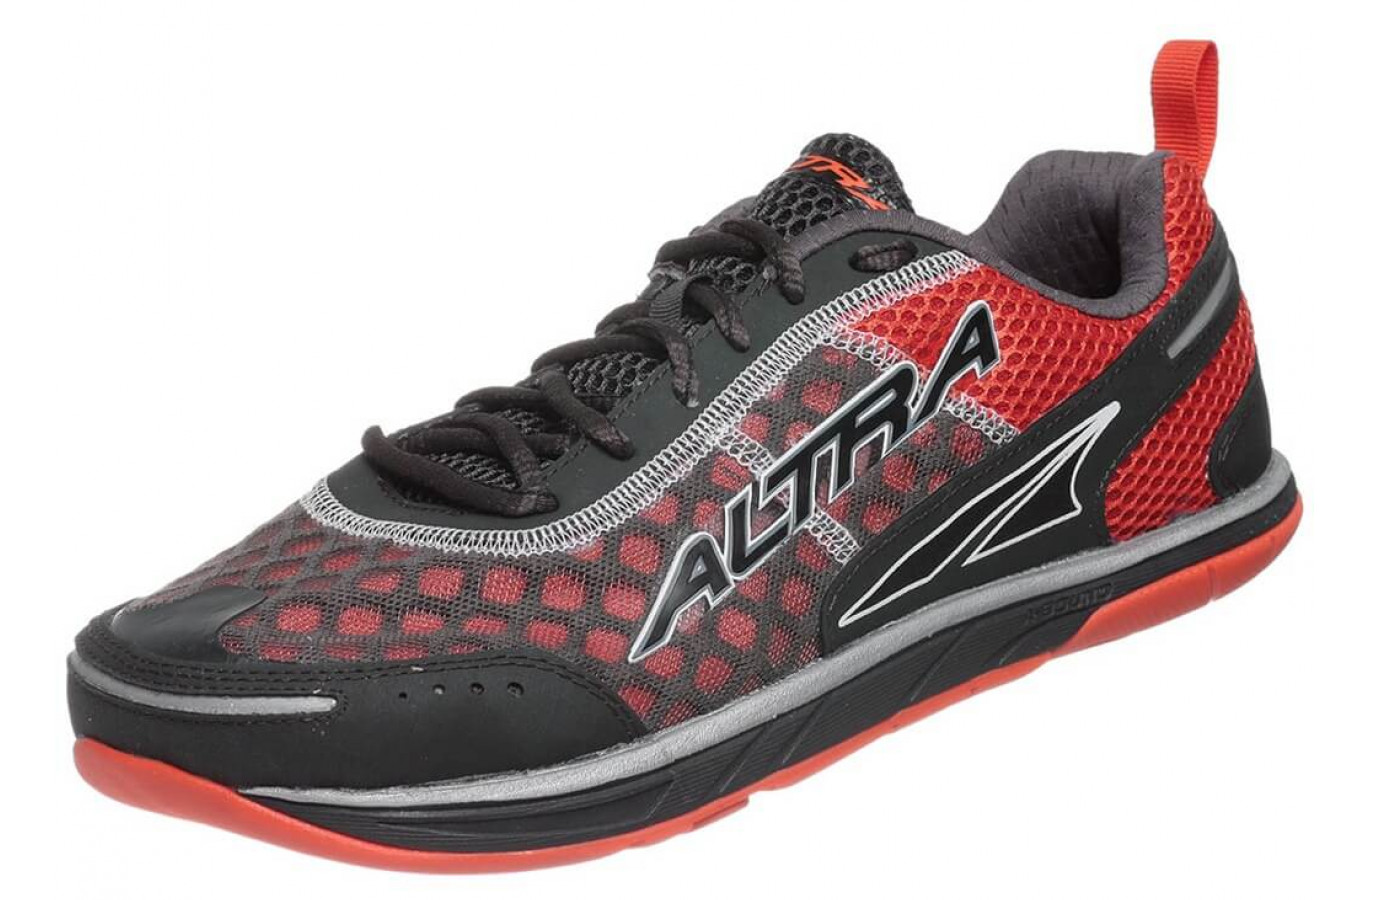 The Altra Instinct 1.5 has an Air Mesh upper